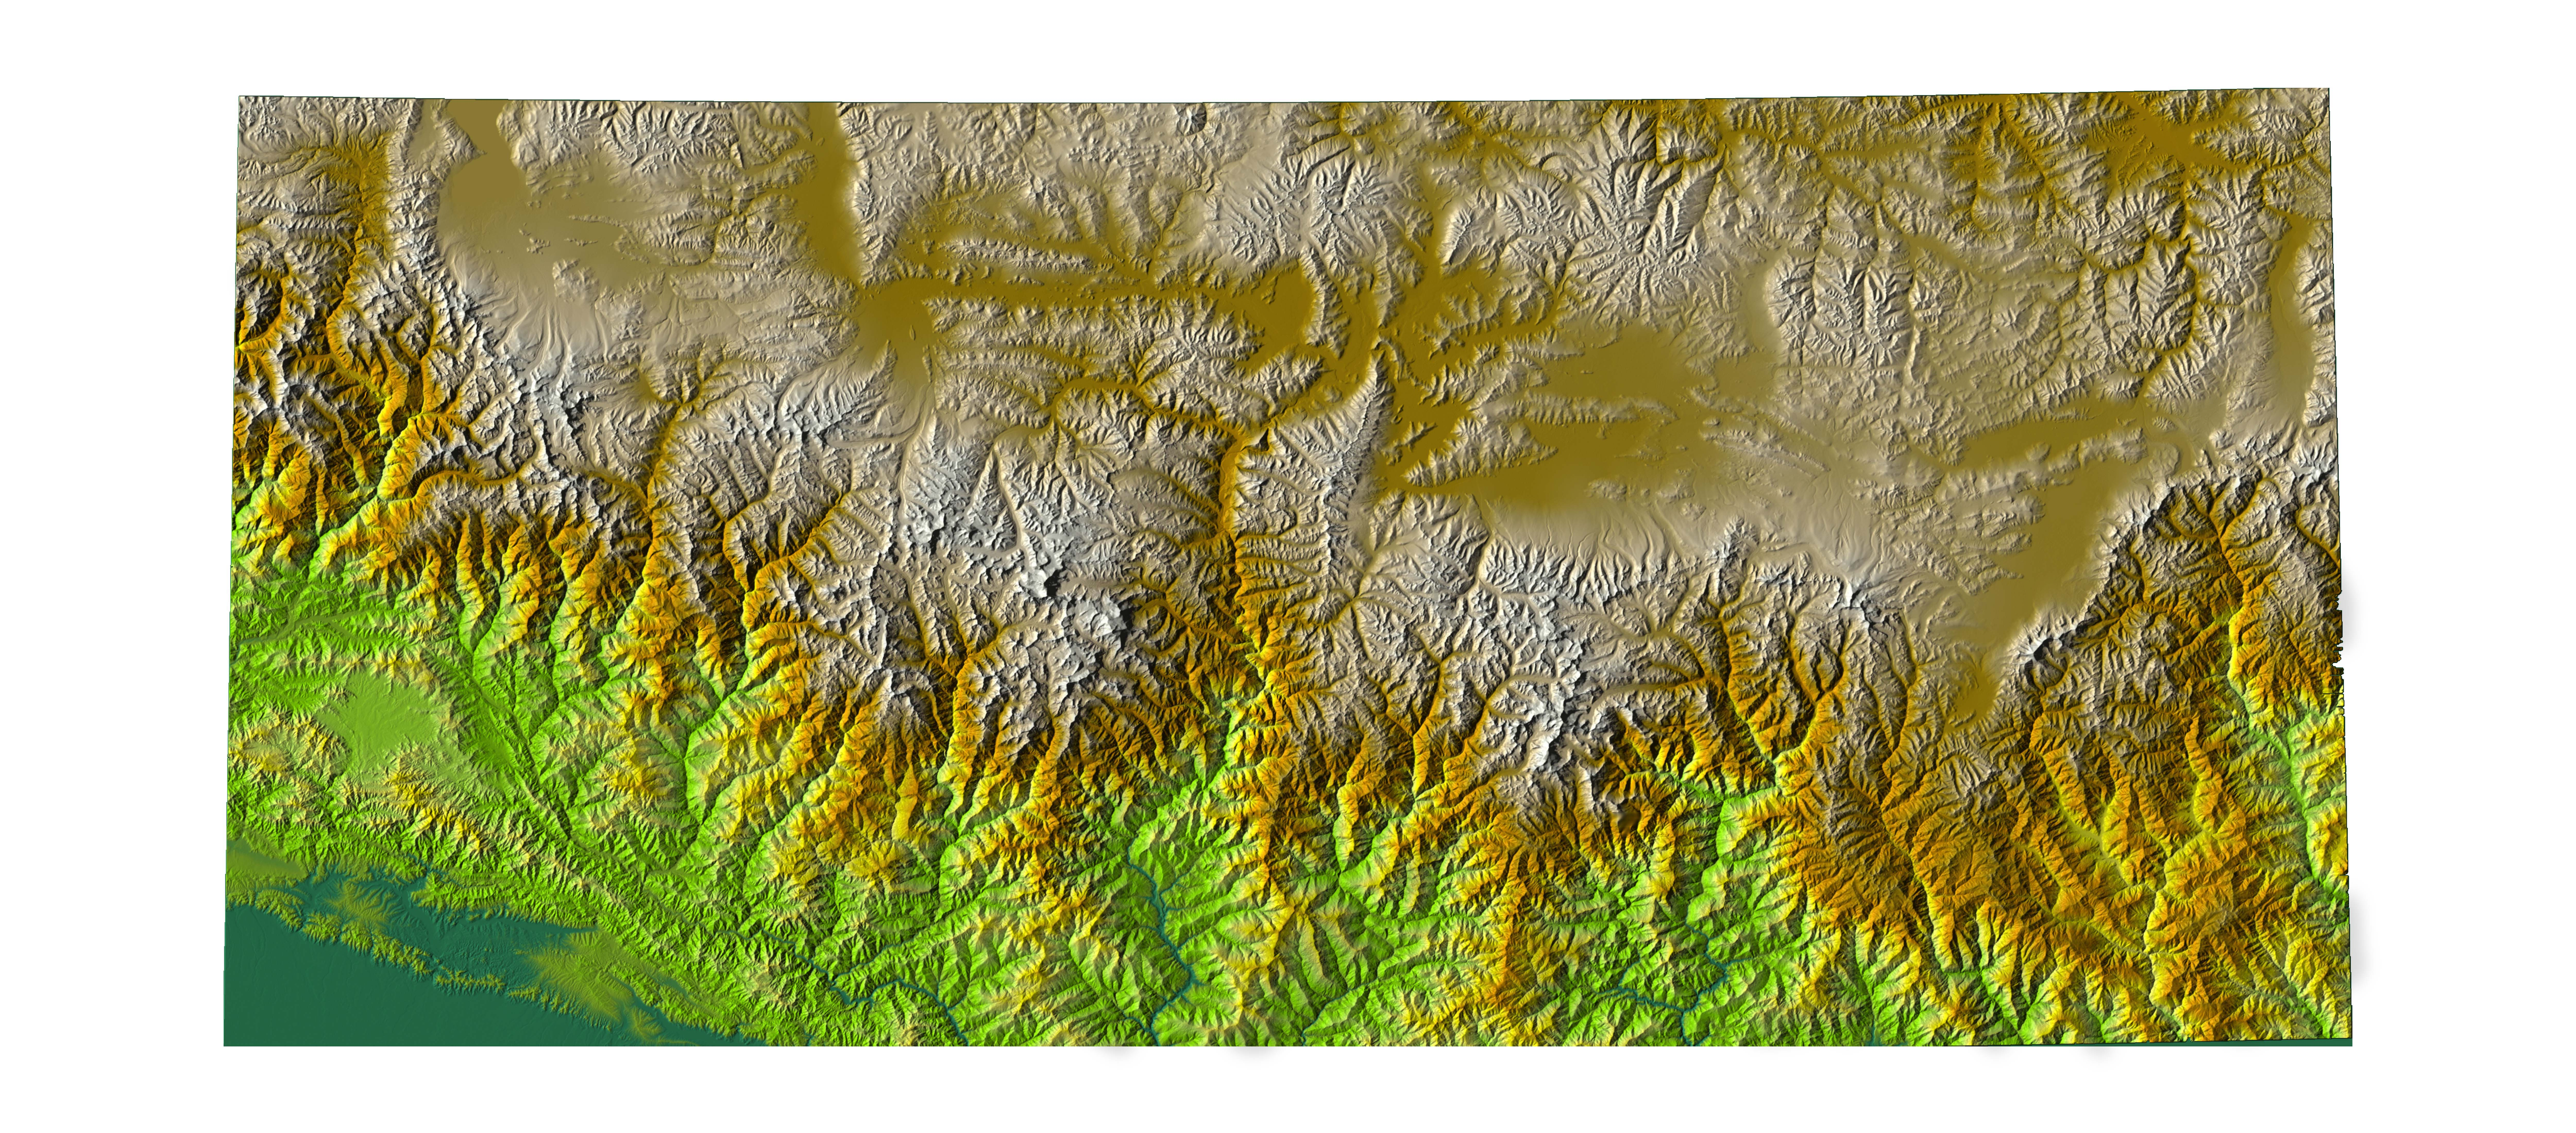 Digital Elevation Data With SRTM Voids Filled Using Accurate - Digital elevation model download